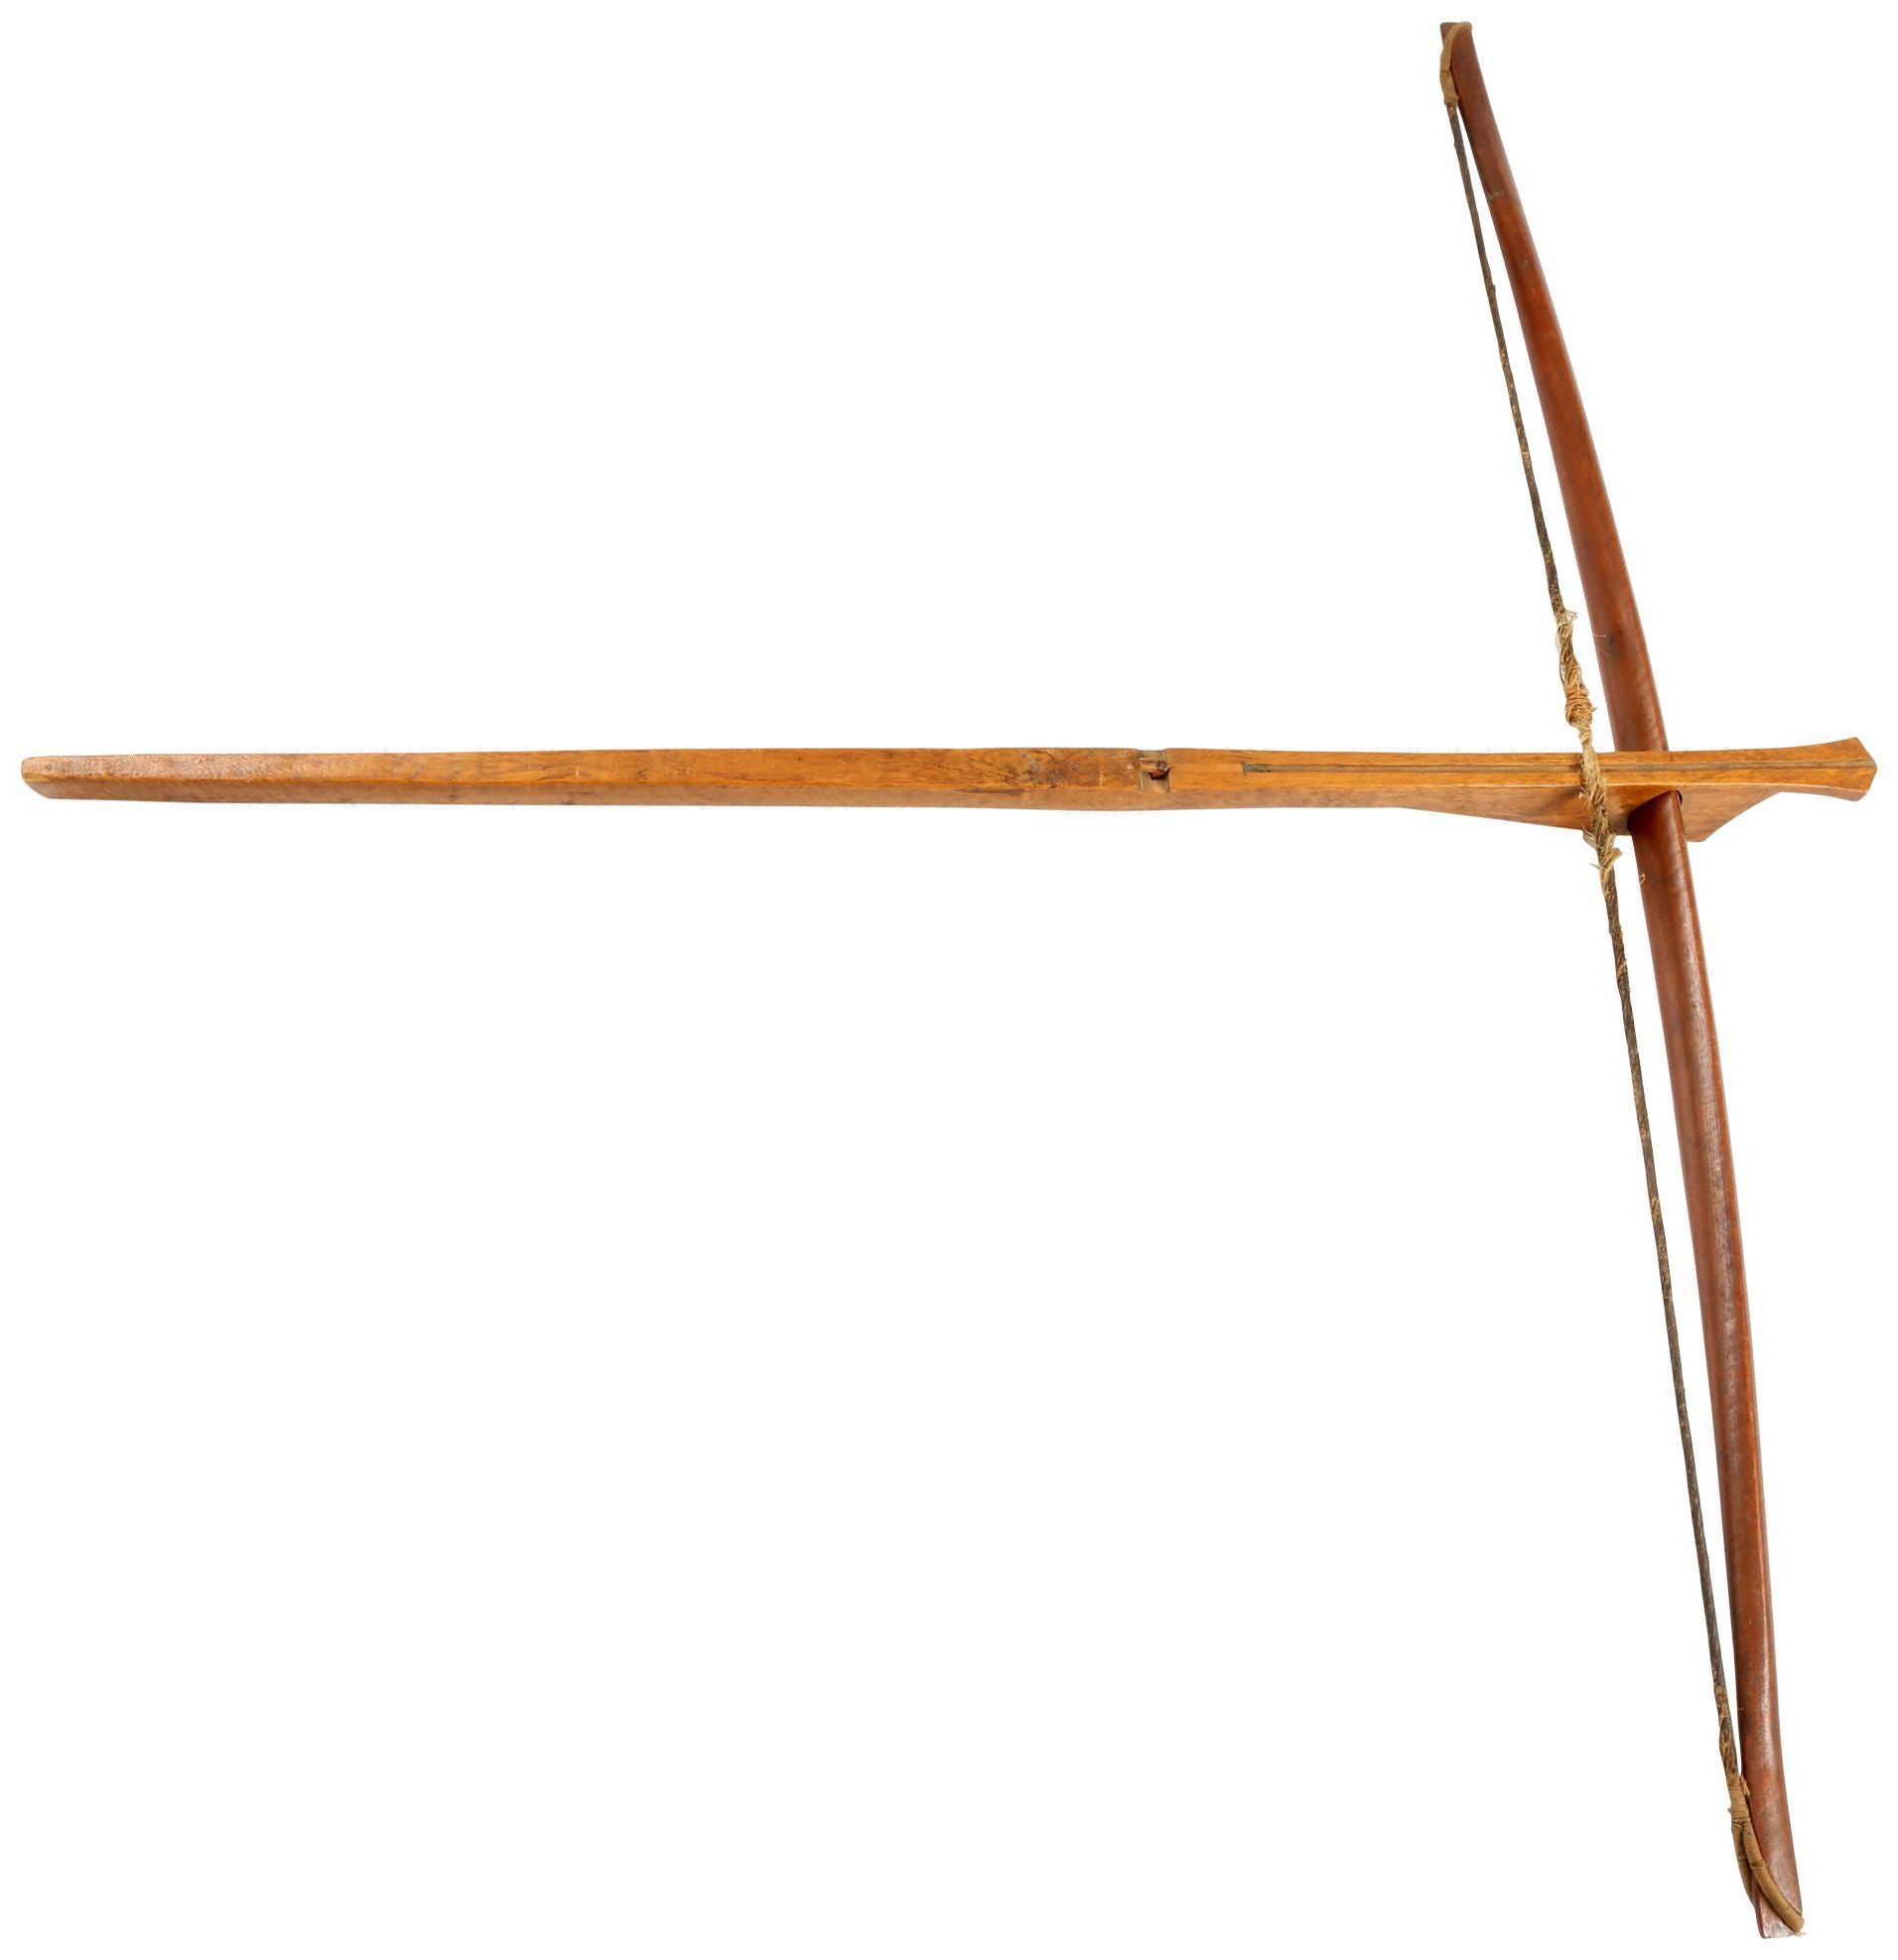 SOUTHEAST ASIAN CROSSBOW THAMI - Fagan Arms